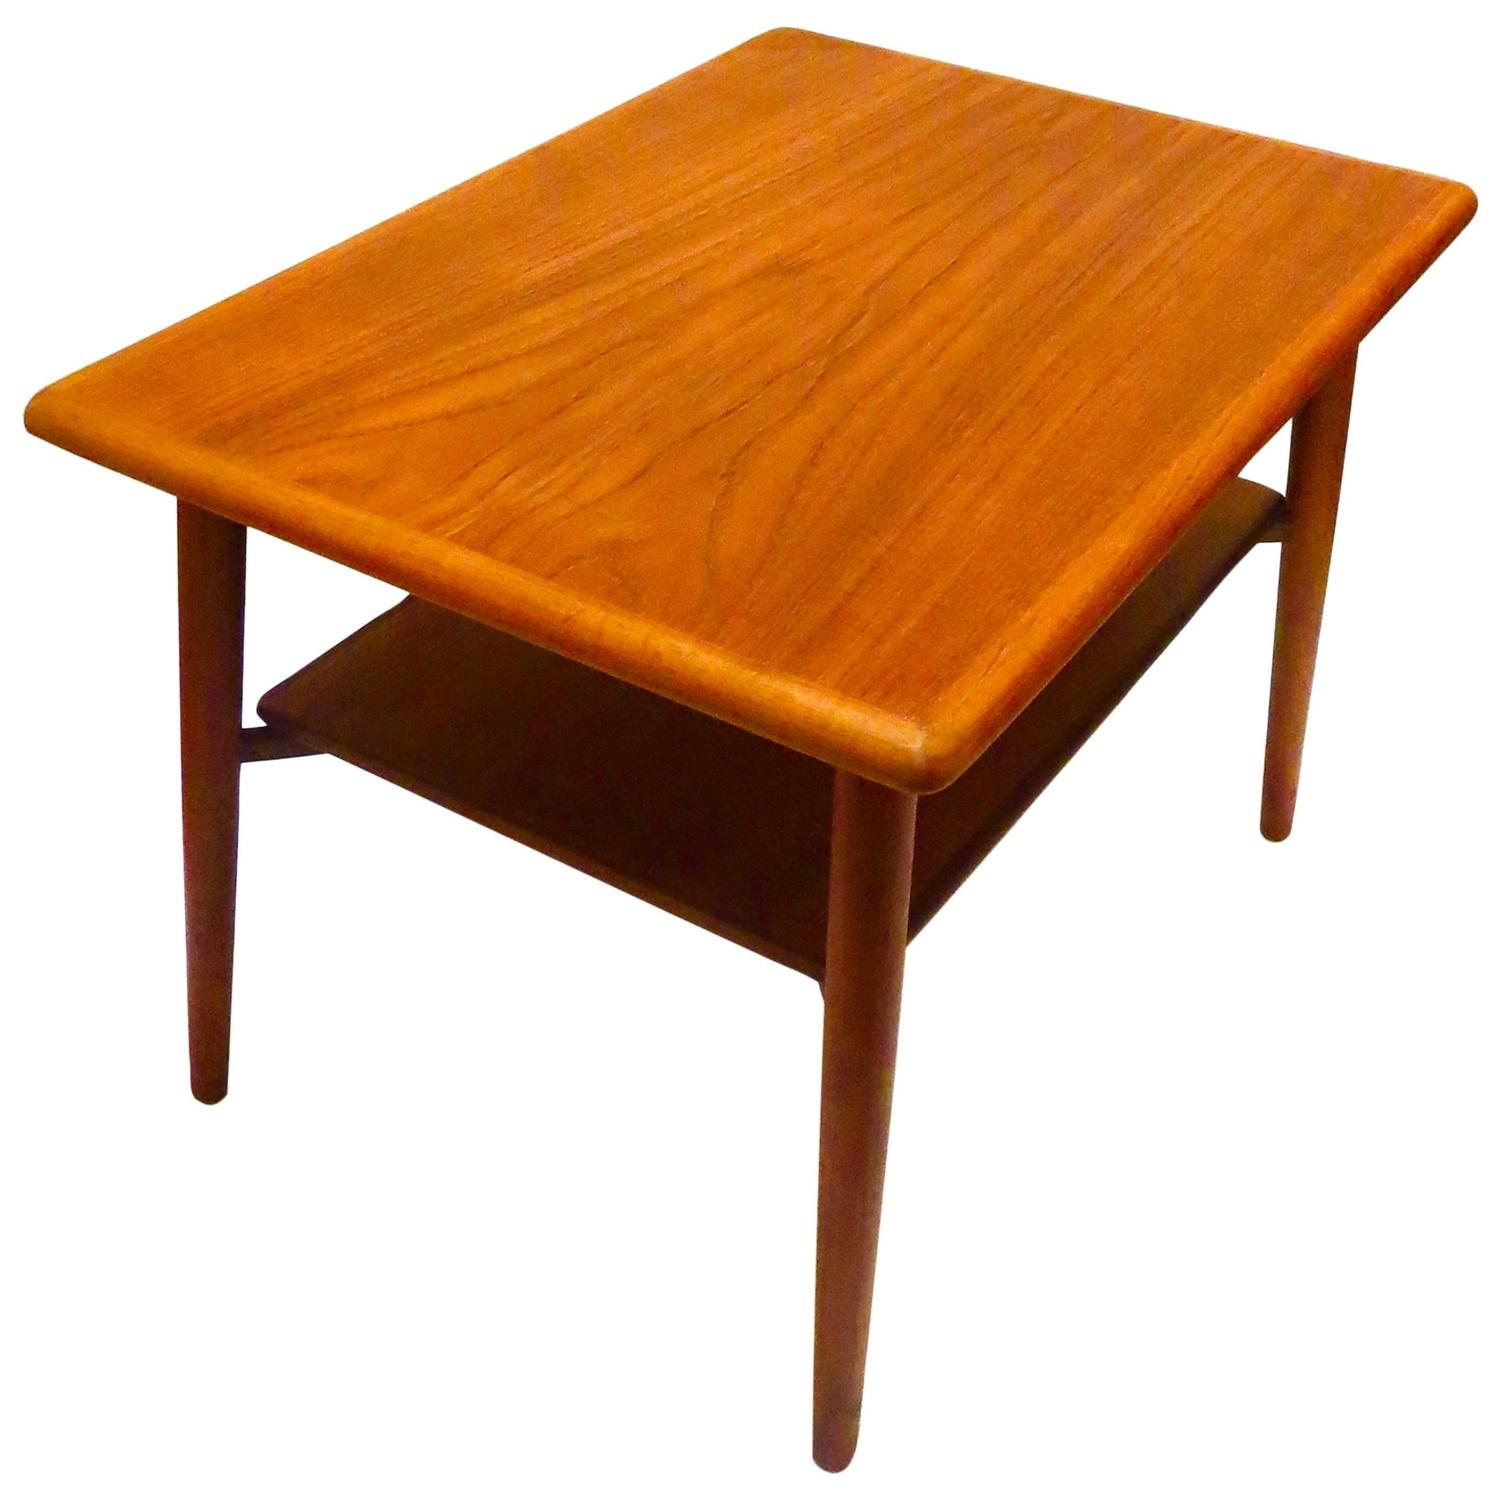 Teak Coffee Table And End Tables: 1950s Danish Modern Teak Cocktail End Table With Shelf At